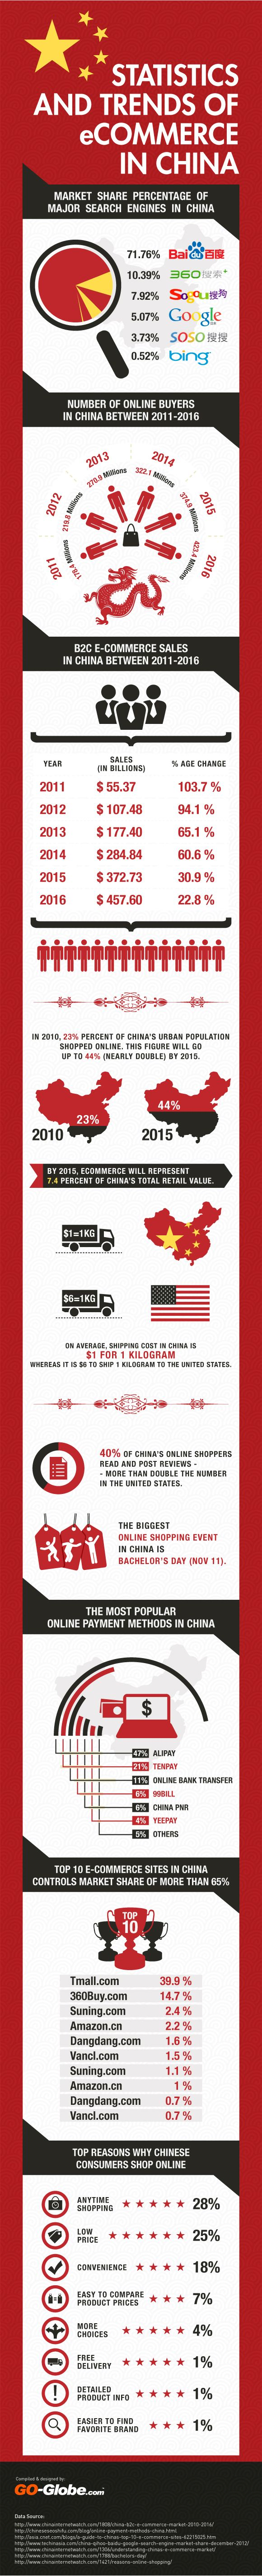 E-commerce In China - Statistics and Trends